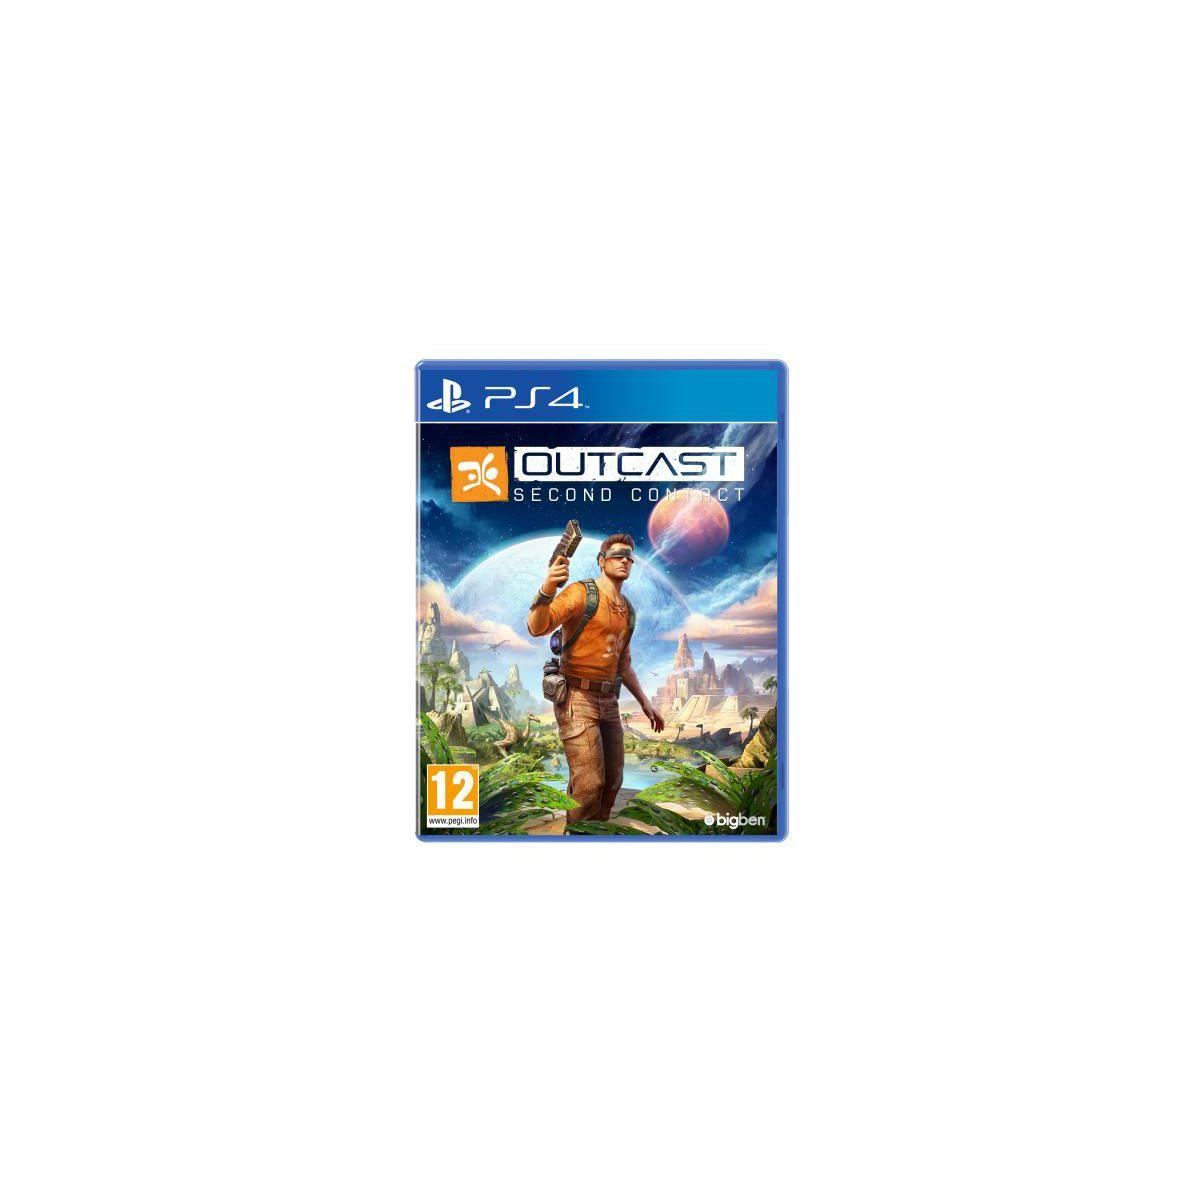 Jeu ps4 bigben outcast second contact - 2% de remise imm�diate avec le code : priv2 (photo)